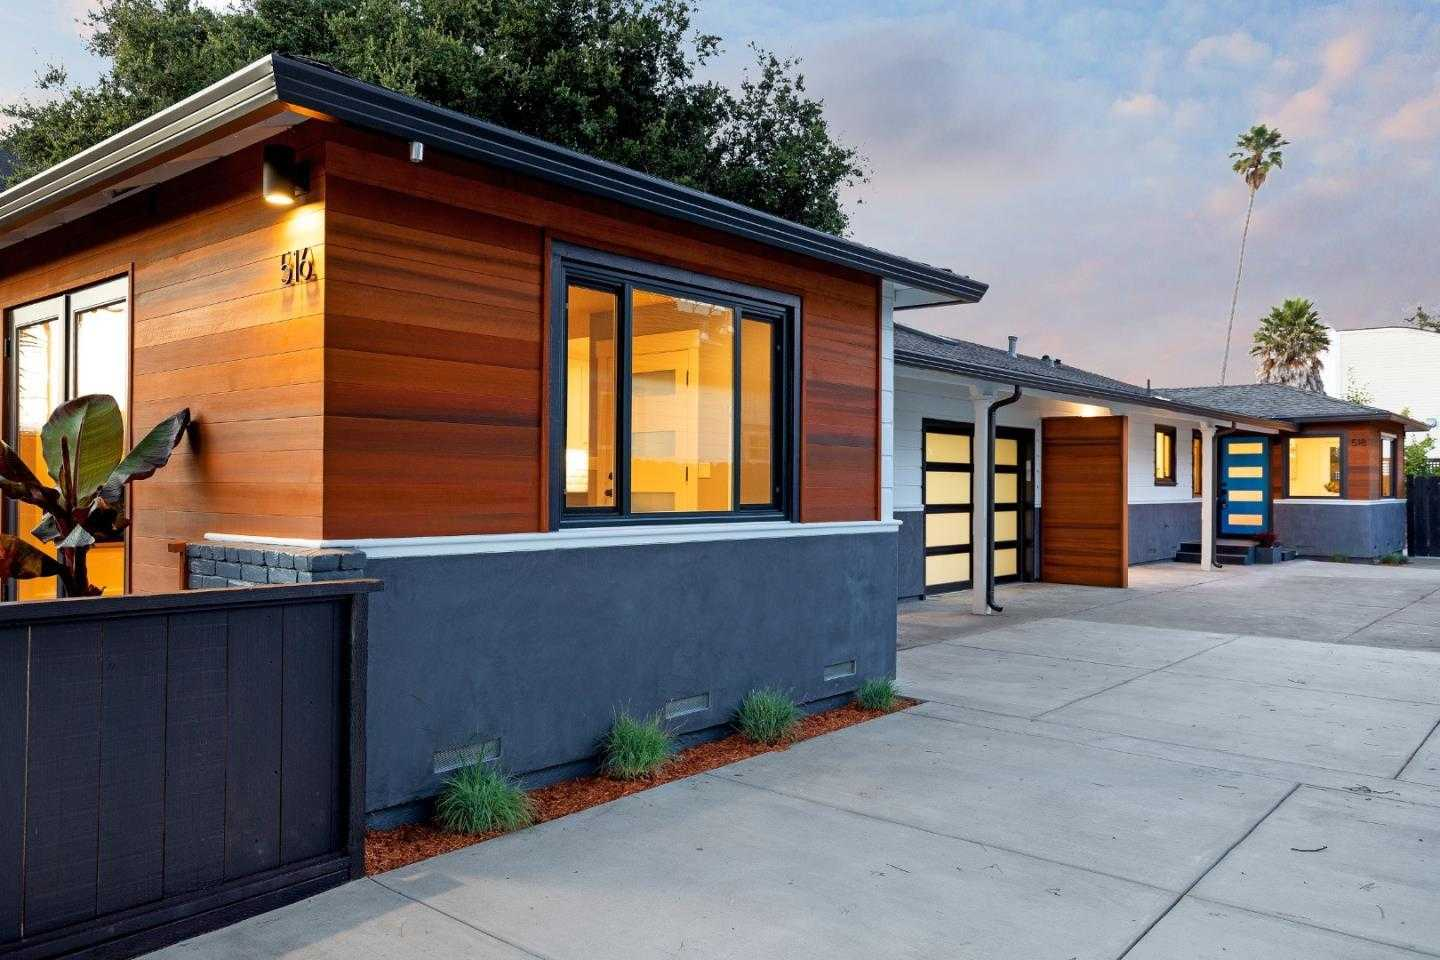 $1,649,000 - 4Br/2Ba -  for Sale in Santa Cruz